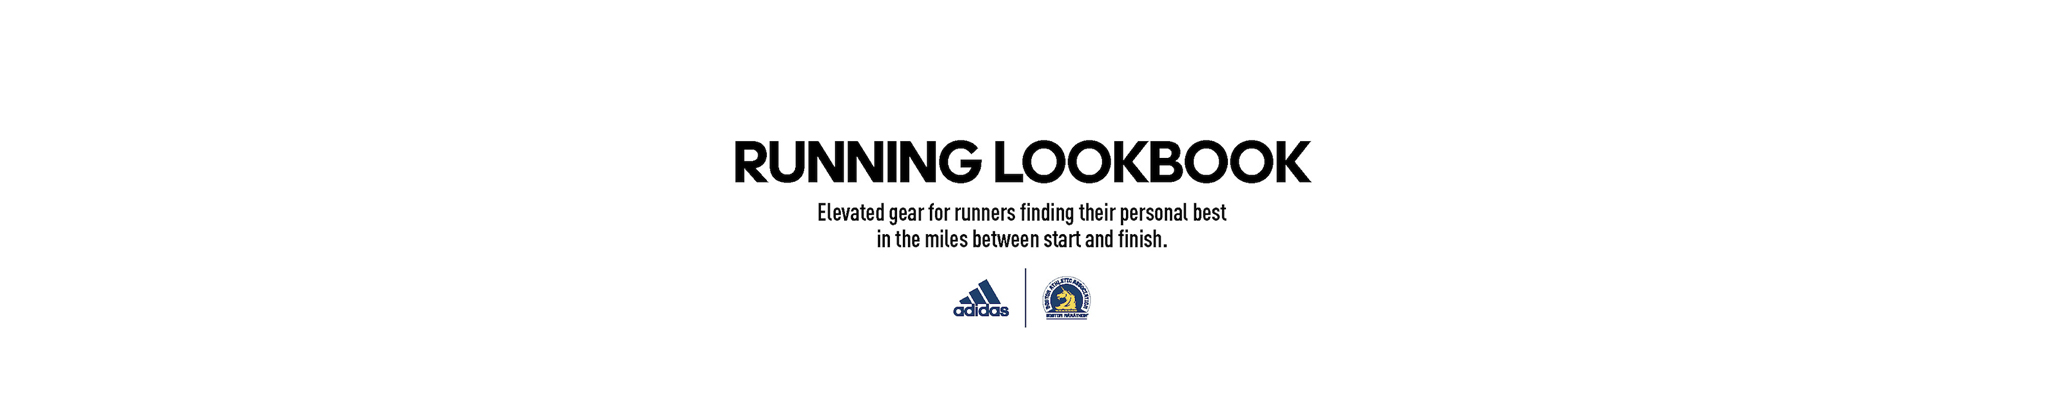 running lookbook.jpg